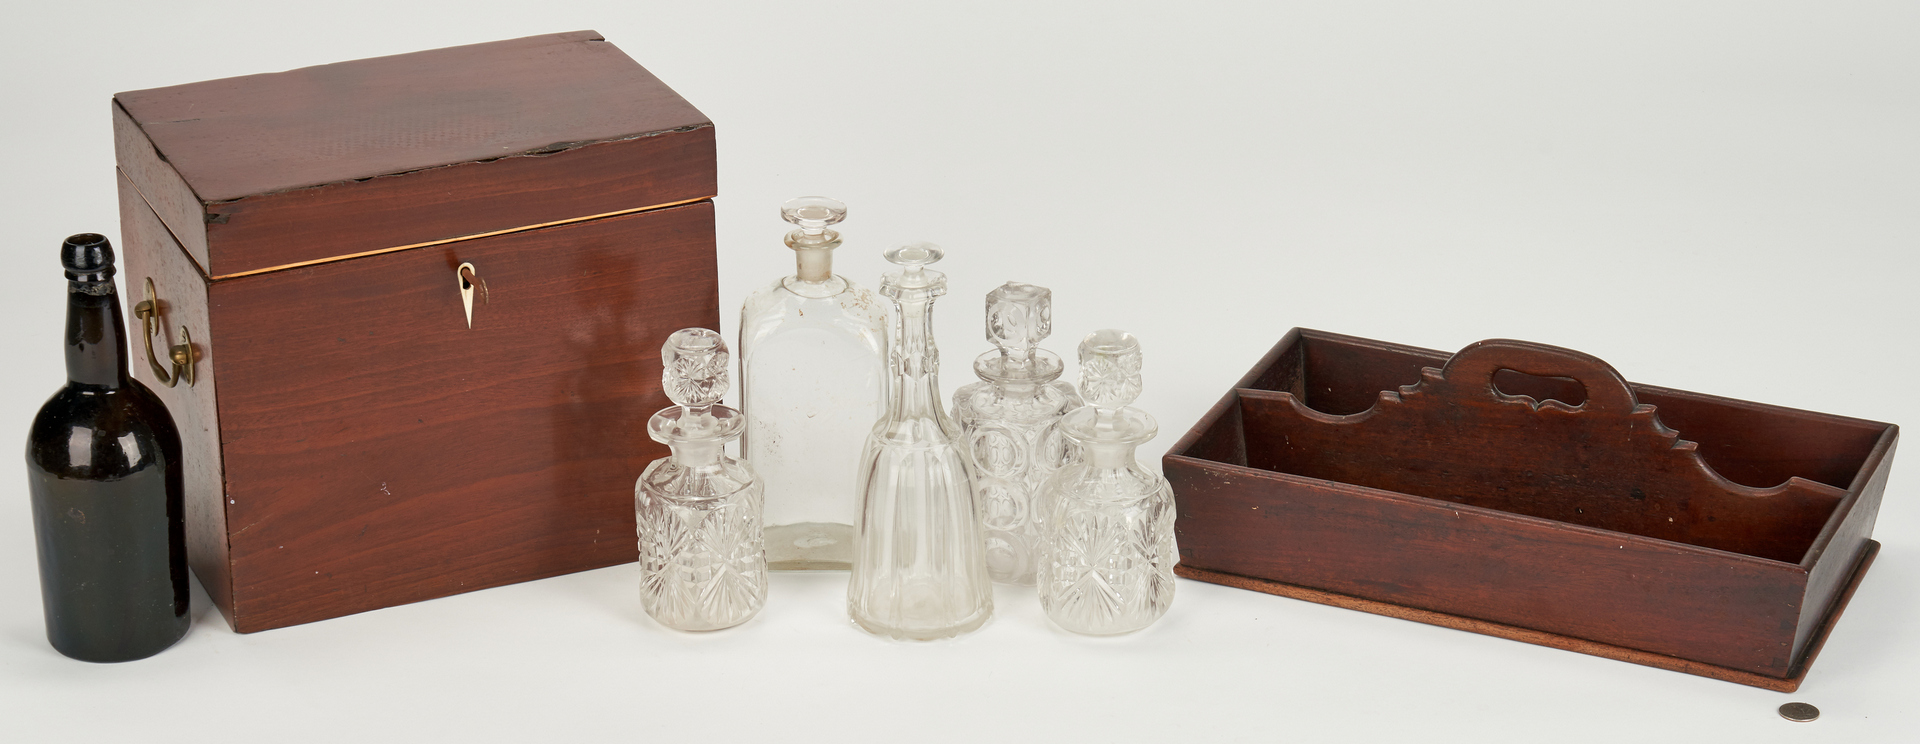 Lot 347: Case & Bottles plus Cutlery Tray